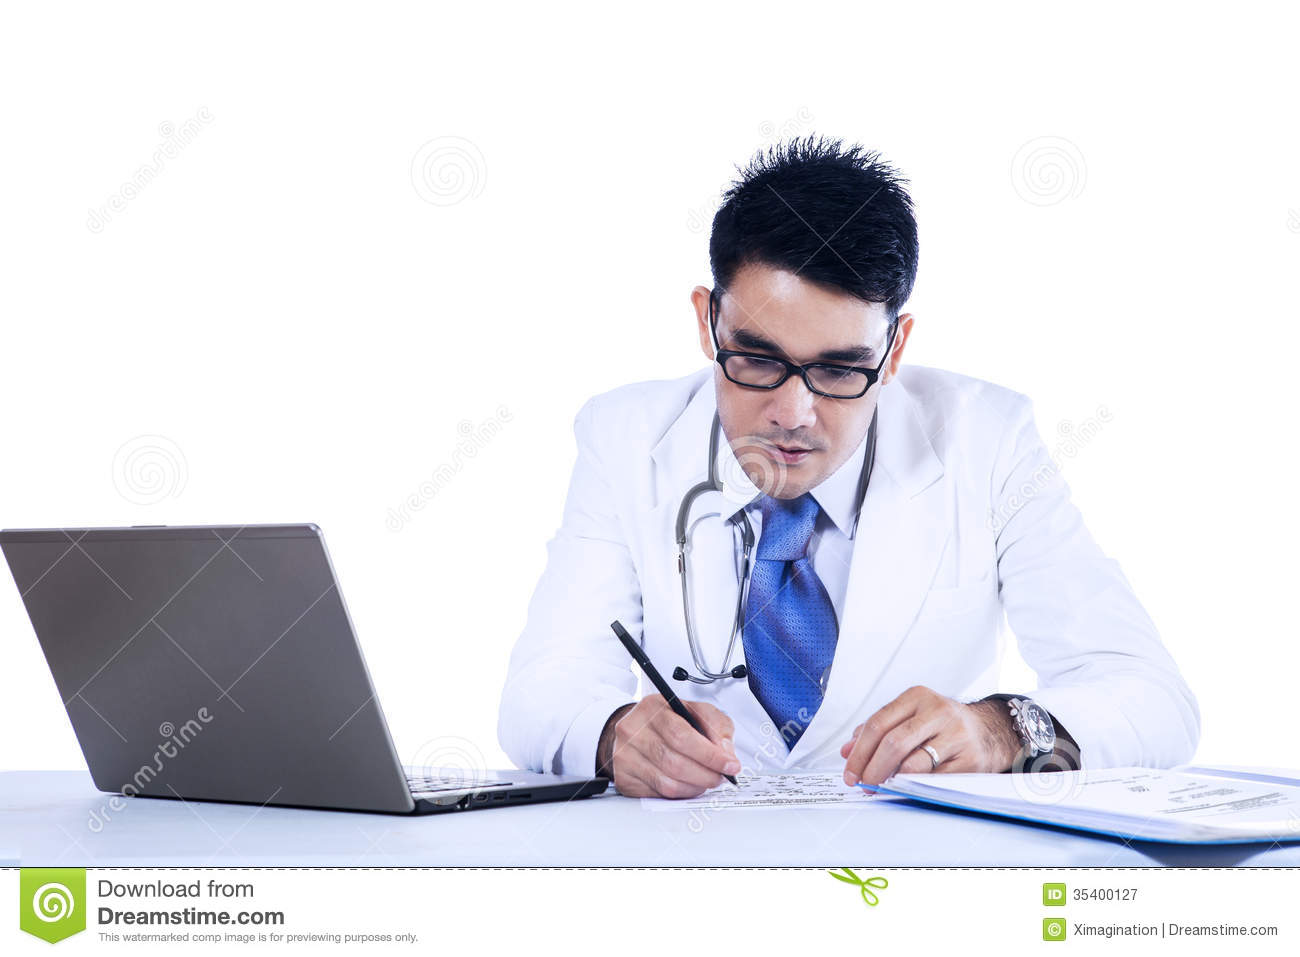 hindi composition on doctor Applying to medical school is a long stressful process, here are some sample medical school essays to help you get started.